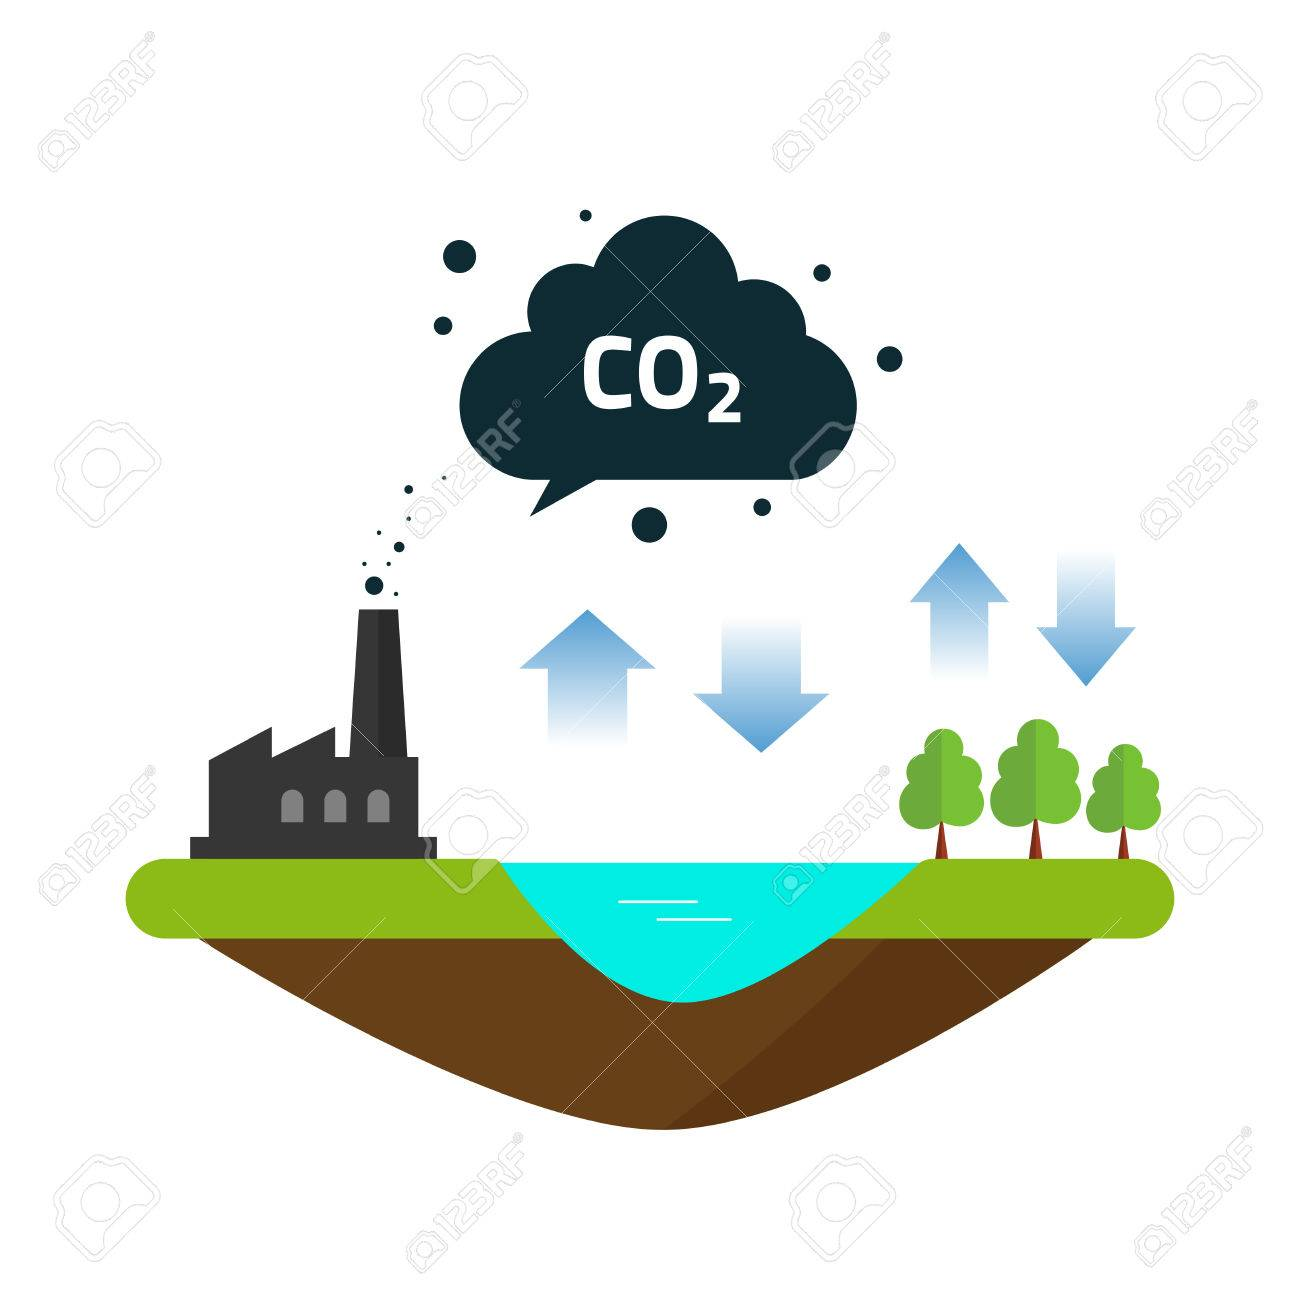 CO2 natural emissions carbon balance cycle between ocean source, plant factory productions and forest. Concept of environmental problem, dioxide pollution issue, climate change vector illustration - 59050958